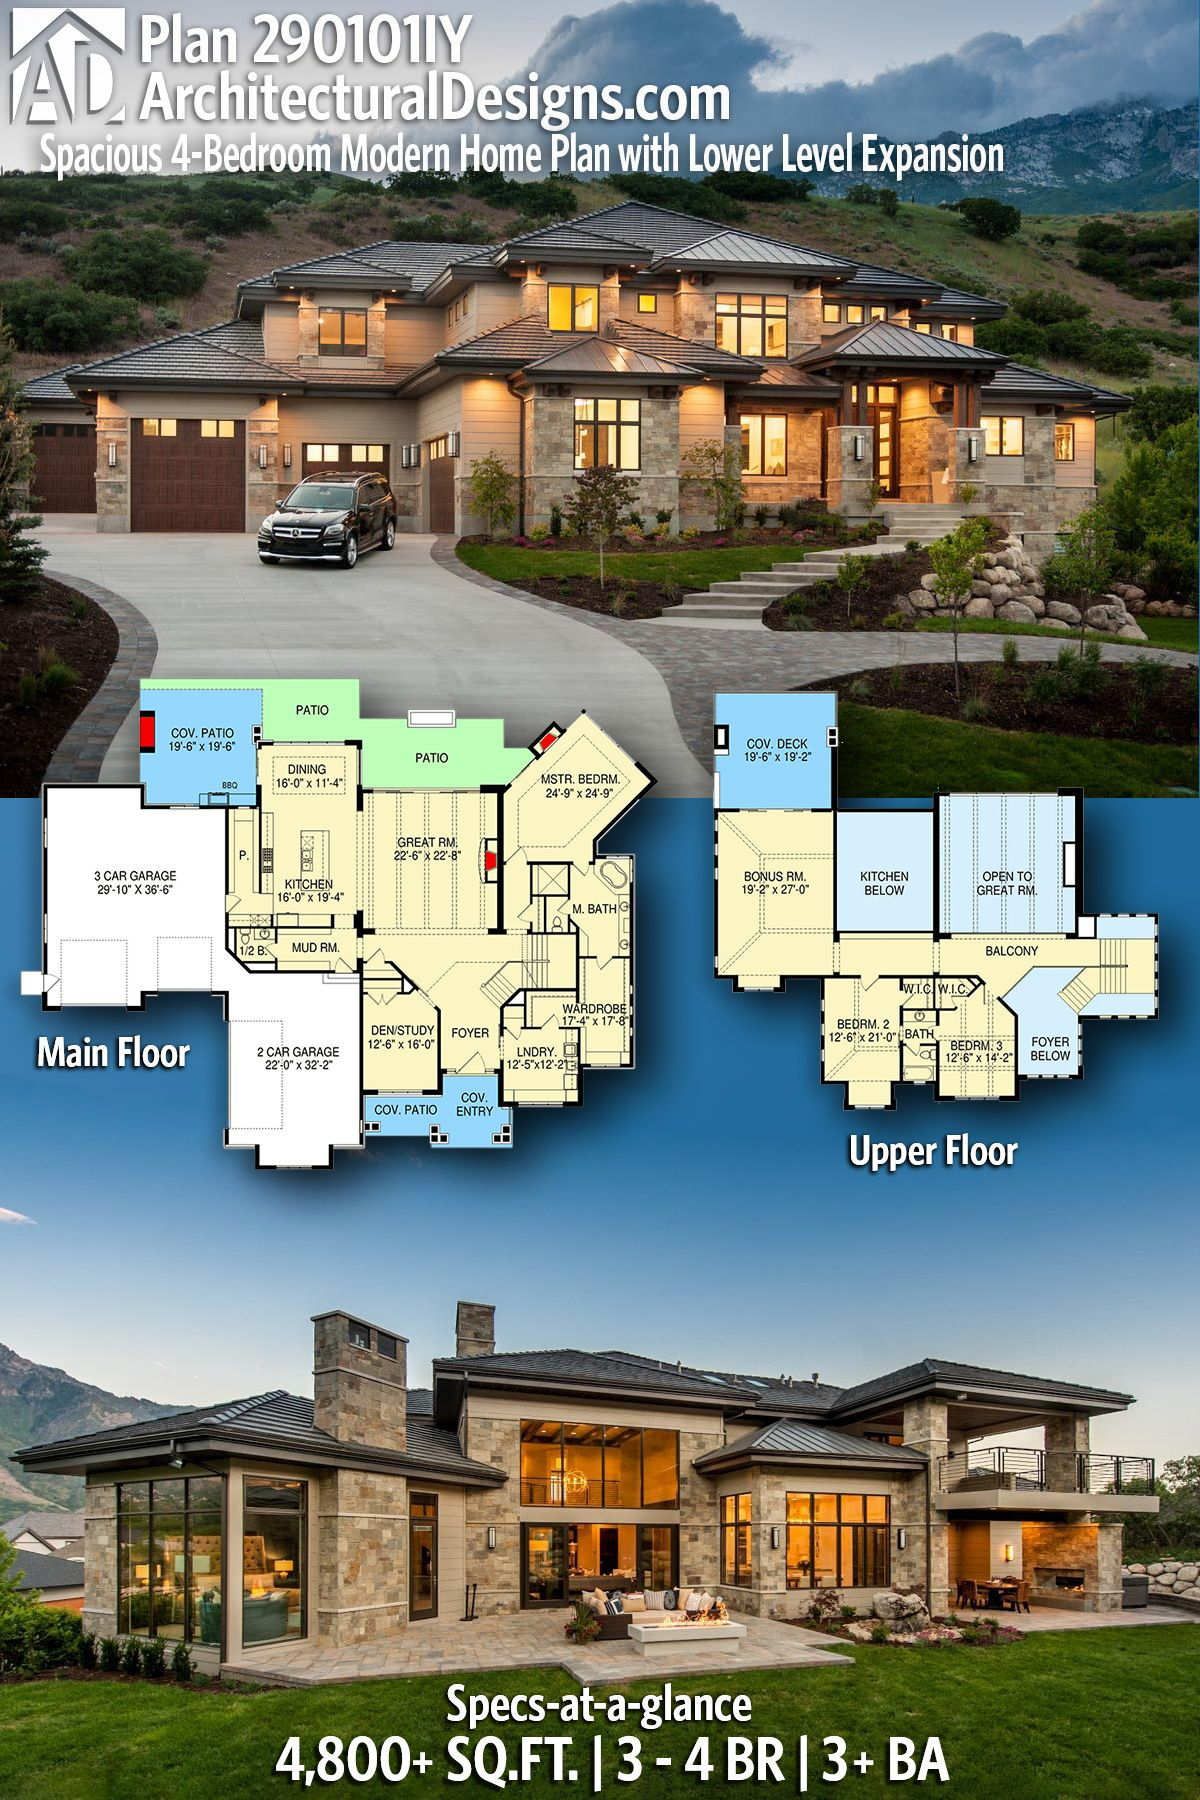 Plan 290101IY: Spacious 4-Bedroom Modern Home Plan with Lower Level Expansion